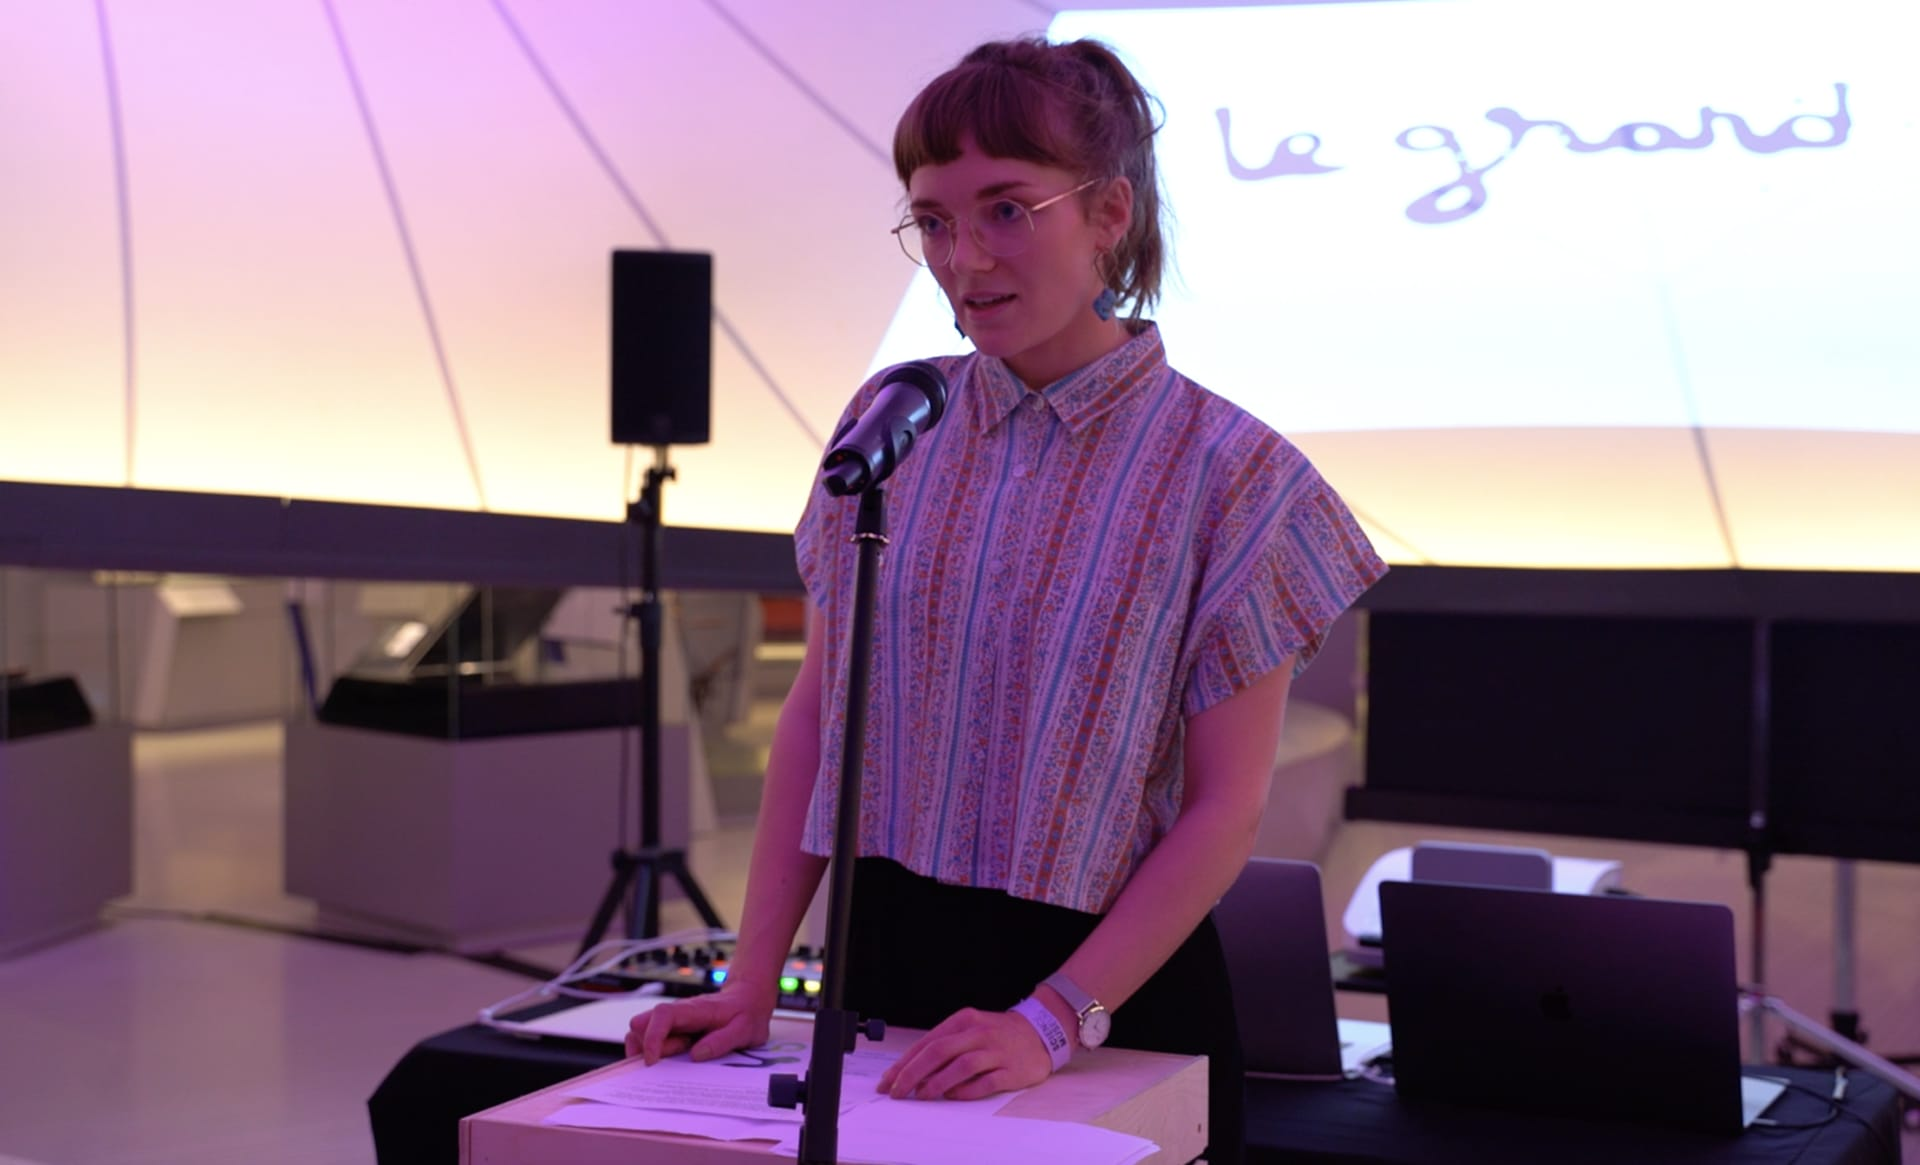 Performance at the Science Museum